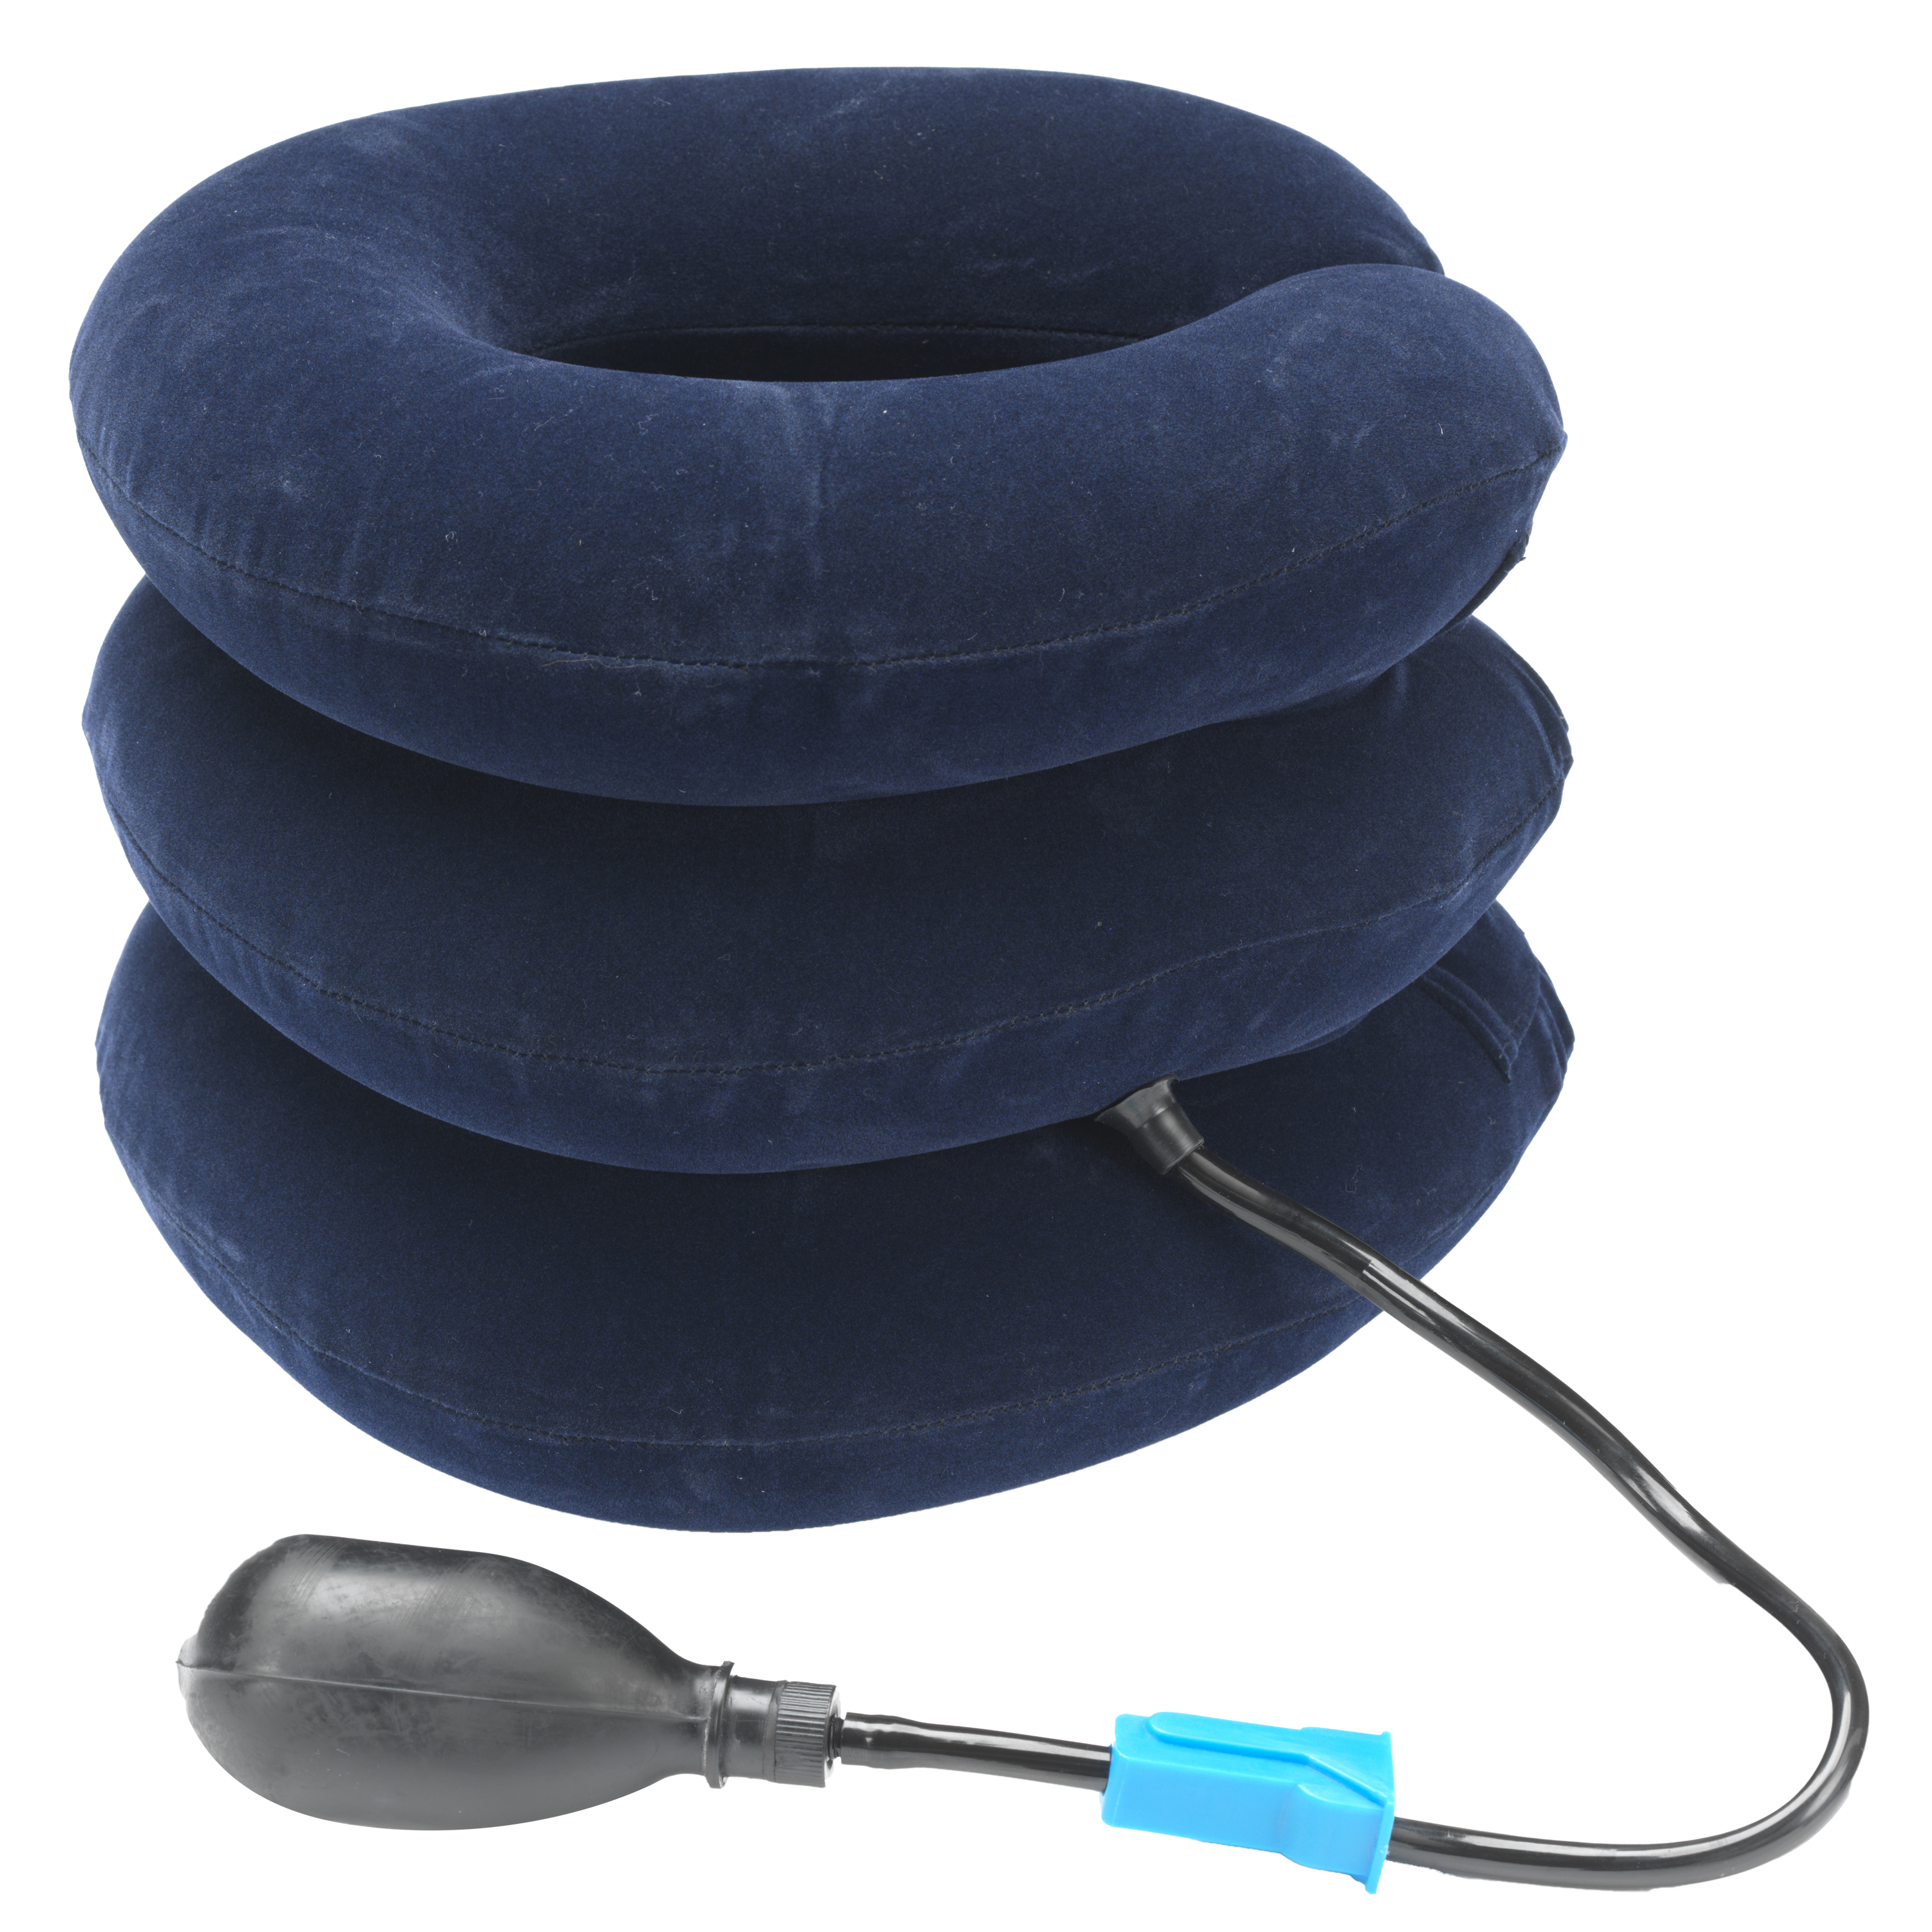 OTC Select Series Inflatable Cervical Traction Unit